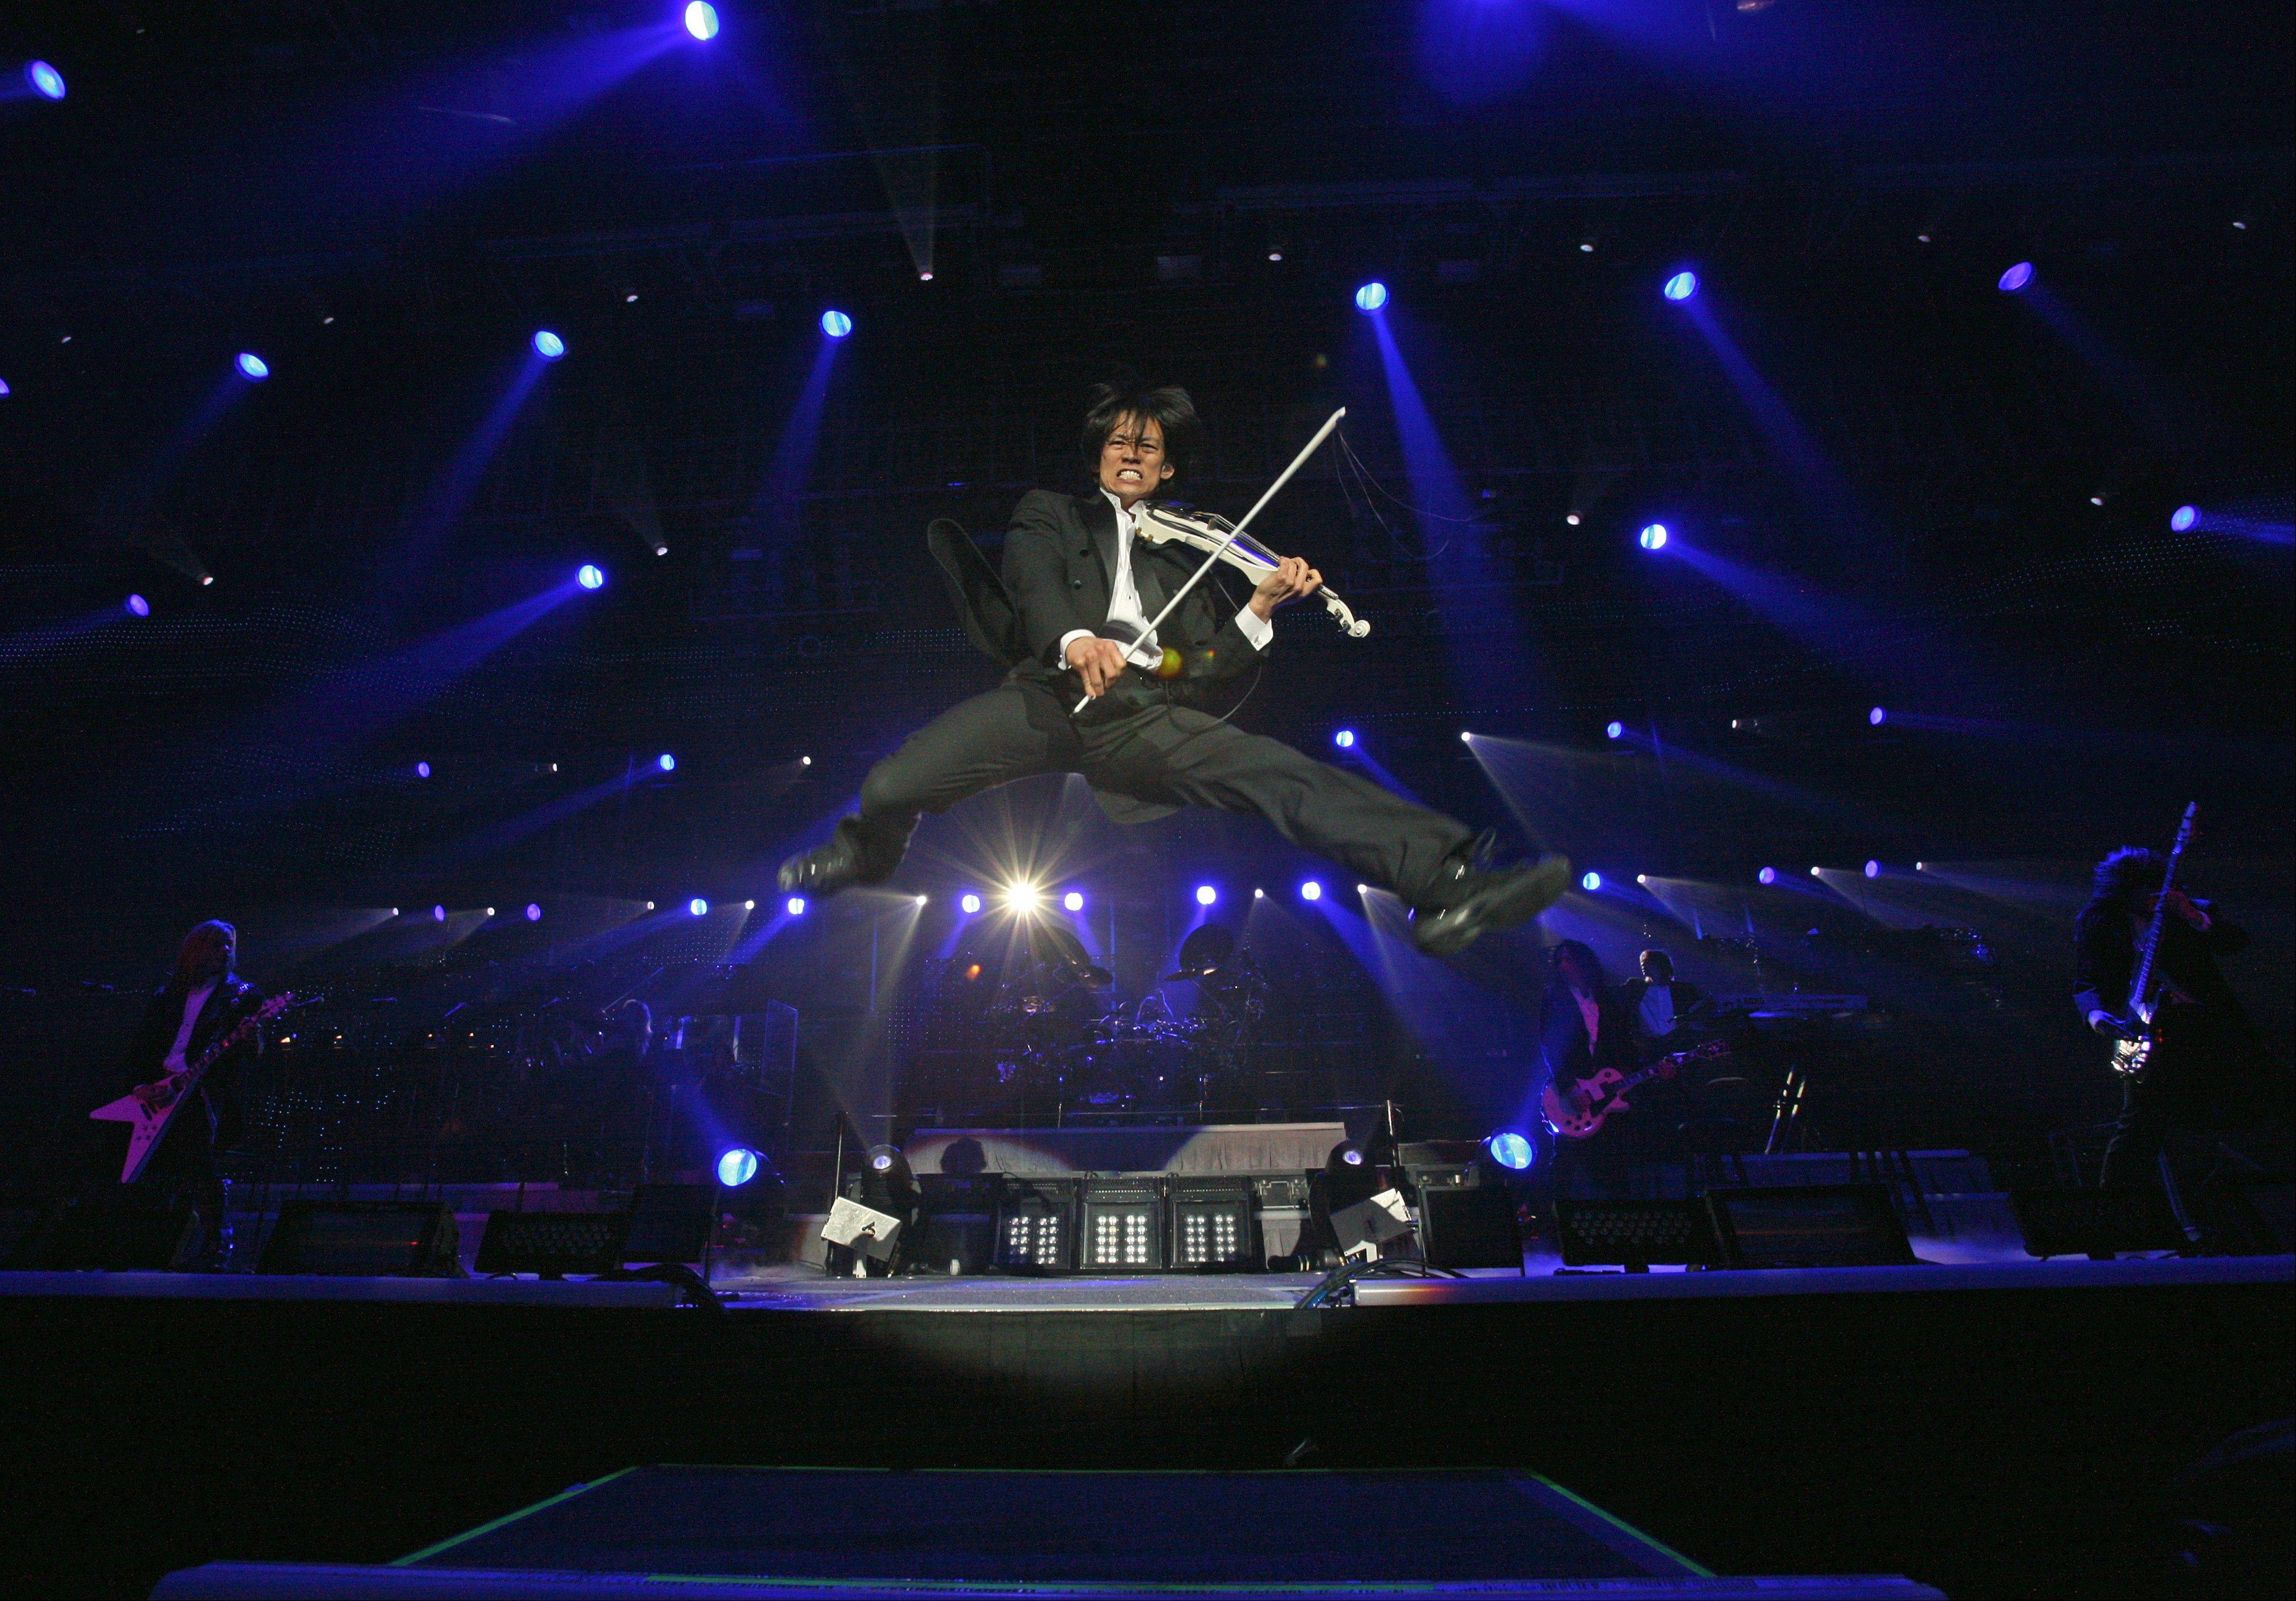 Roddy Chong, of Schaumburg, leaps into the air while playing rock violin with the Trans-Siberian Orchestra, which performs two shows Saturday, Dec. 8, at the Allstate Arena.